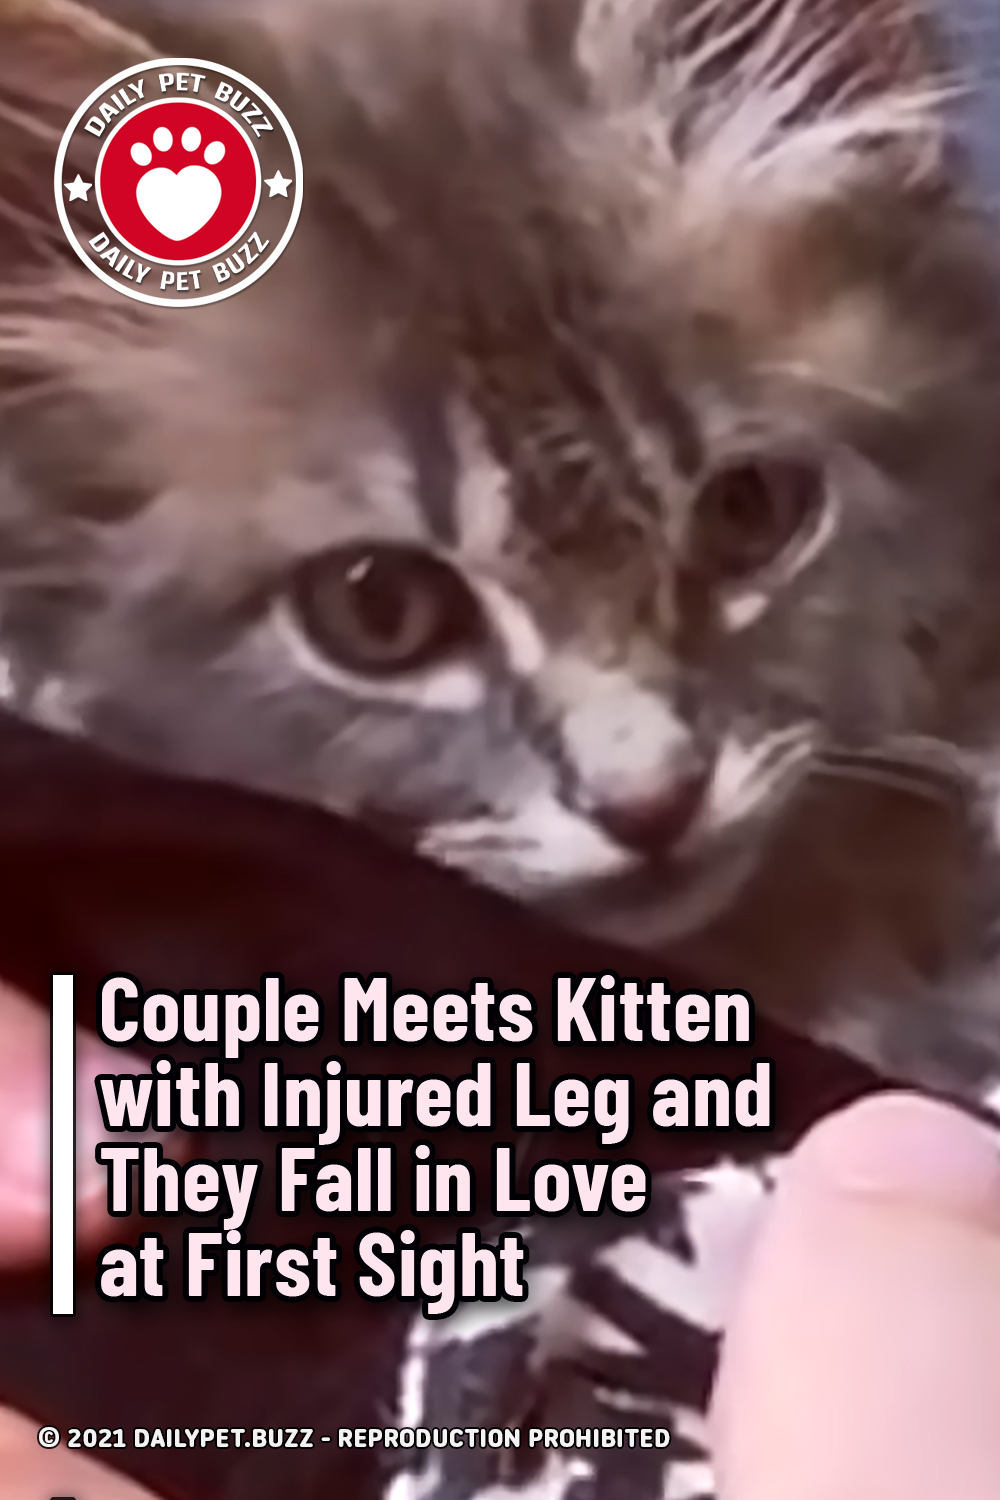 Couple Meets Kitten with Injured Leg and They Fall in Love at First Sight